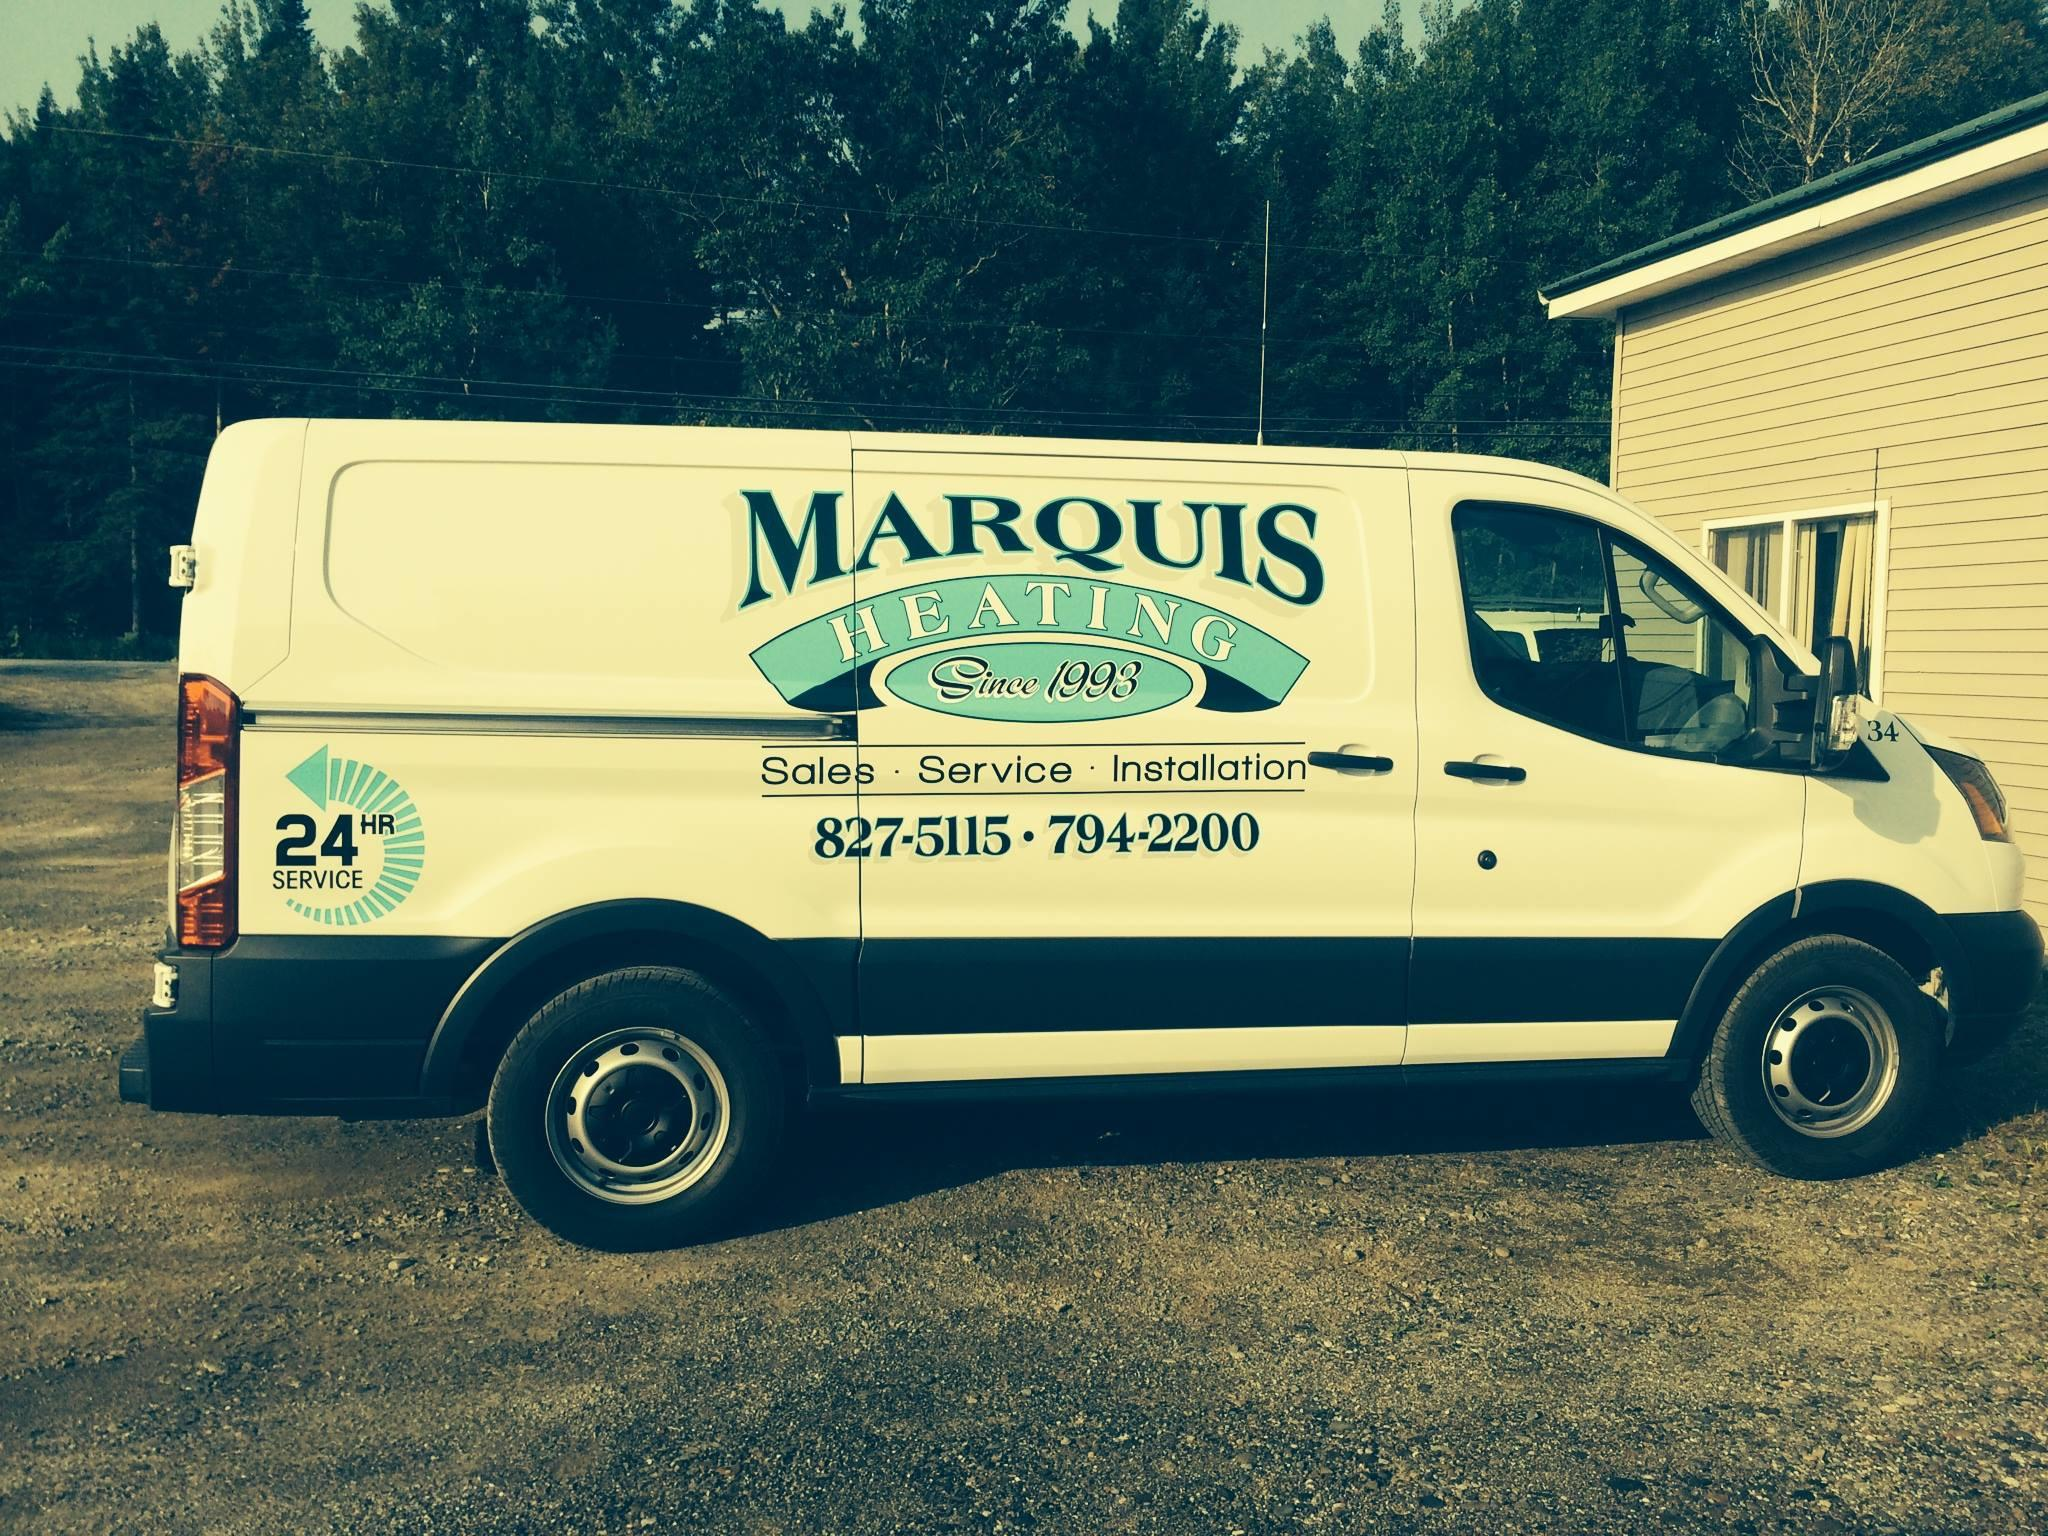 Marquis Heating, Inc image 5